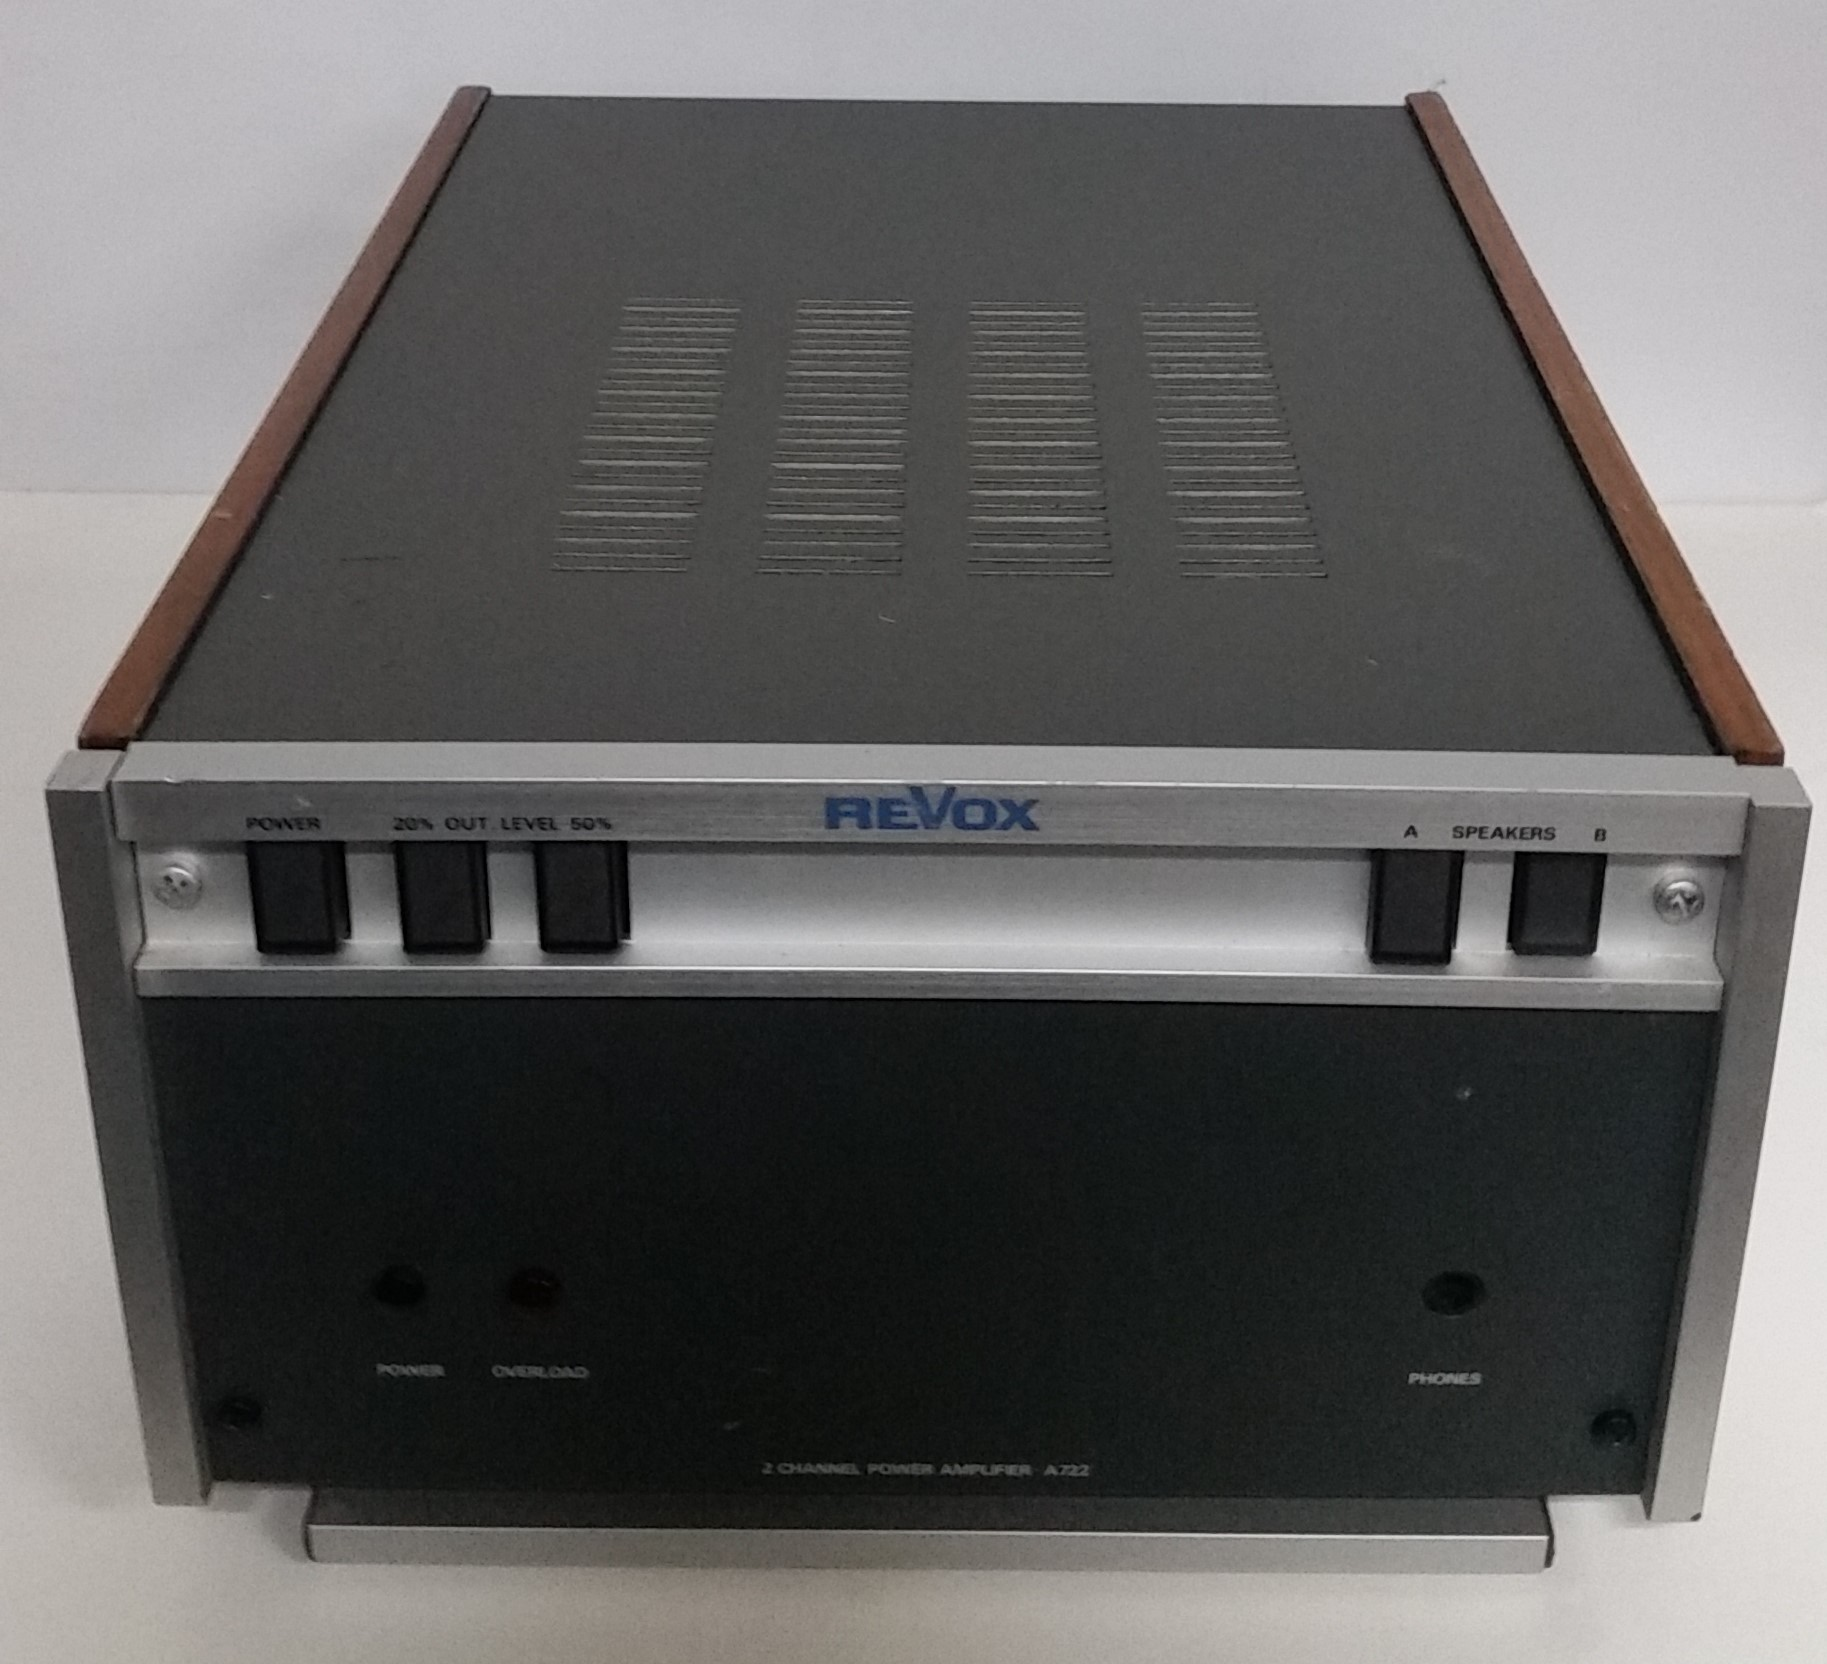 Revox A722 two channel power amplifier   Made in Germany   Specifications:  Manufacturer: Willi Studer/Revox, Germany  Inputs: 775 kohms mV/20  RMS power: 2 x 60 watts into 4 ohms, 2 x 45 watts into 8 ohms  Music power: 2 x 90 watts at 4 ohms  Intermodulation 250 Hz/8000 Hz 4/1 at rated power: <0.3% Frequency response over all: 20-20000 Hz Outputs: Speakers: 4, 4 ohms, headphones: 1  Dimensions: 240 x 151 x 315.5 mm  Weight: 8.9 kg   $595